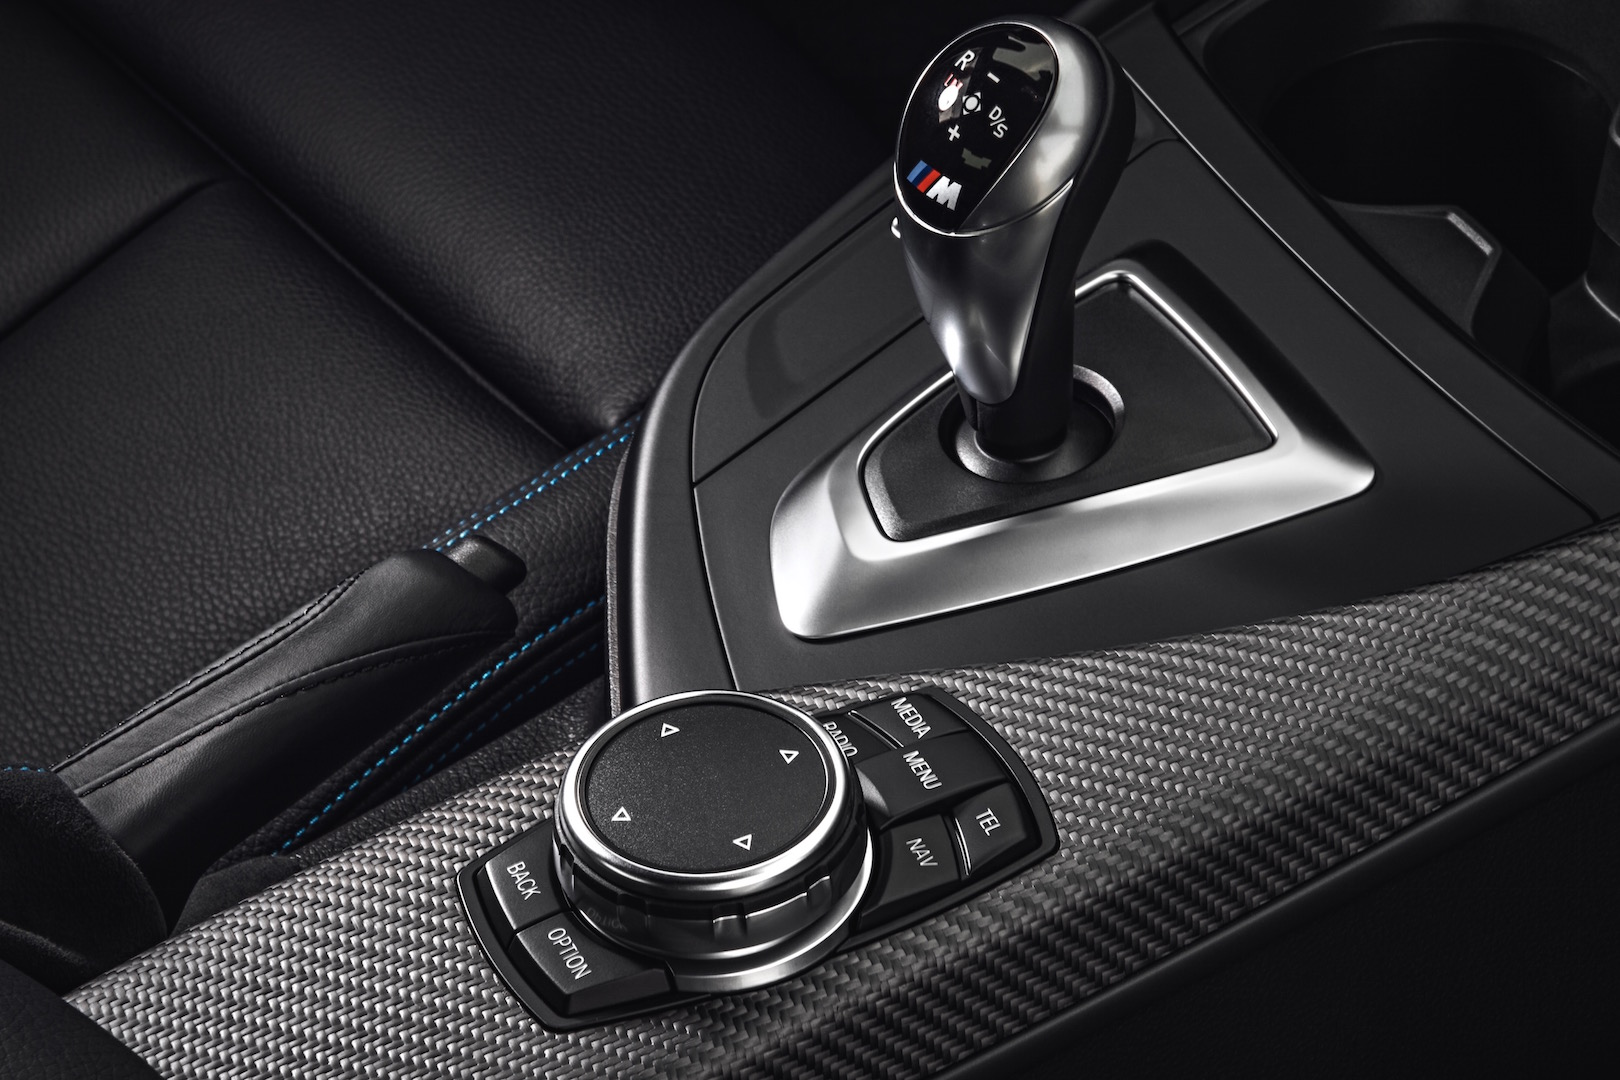 2016 BMW M2 Coupe 7-speed DCT